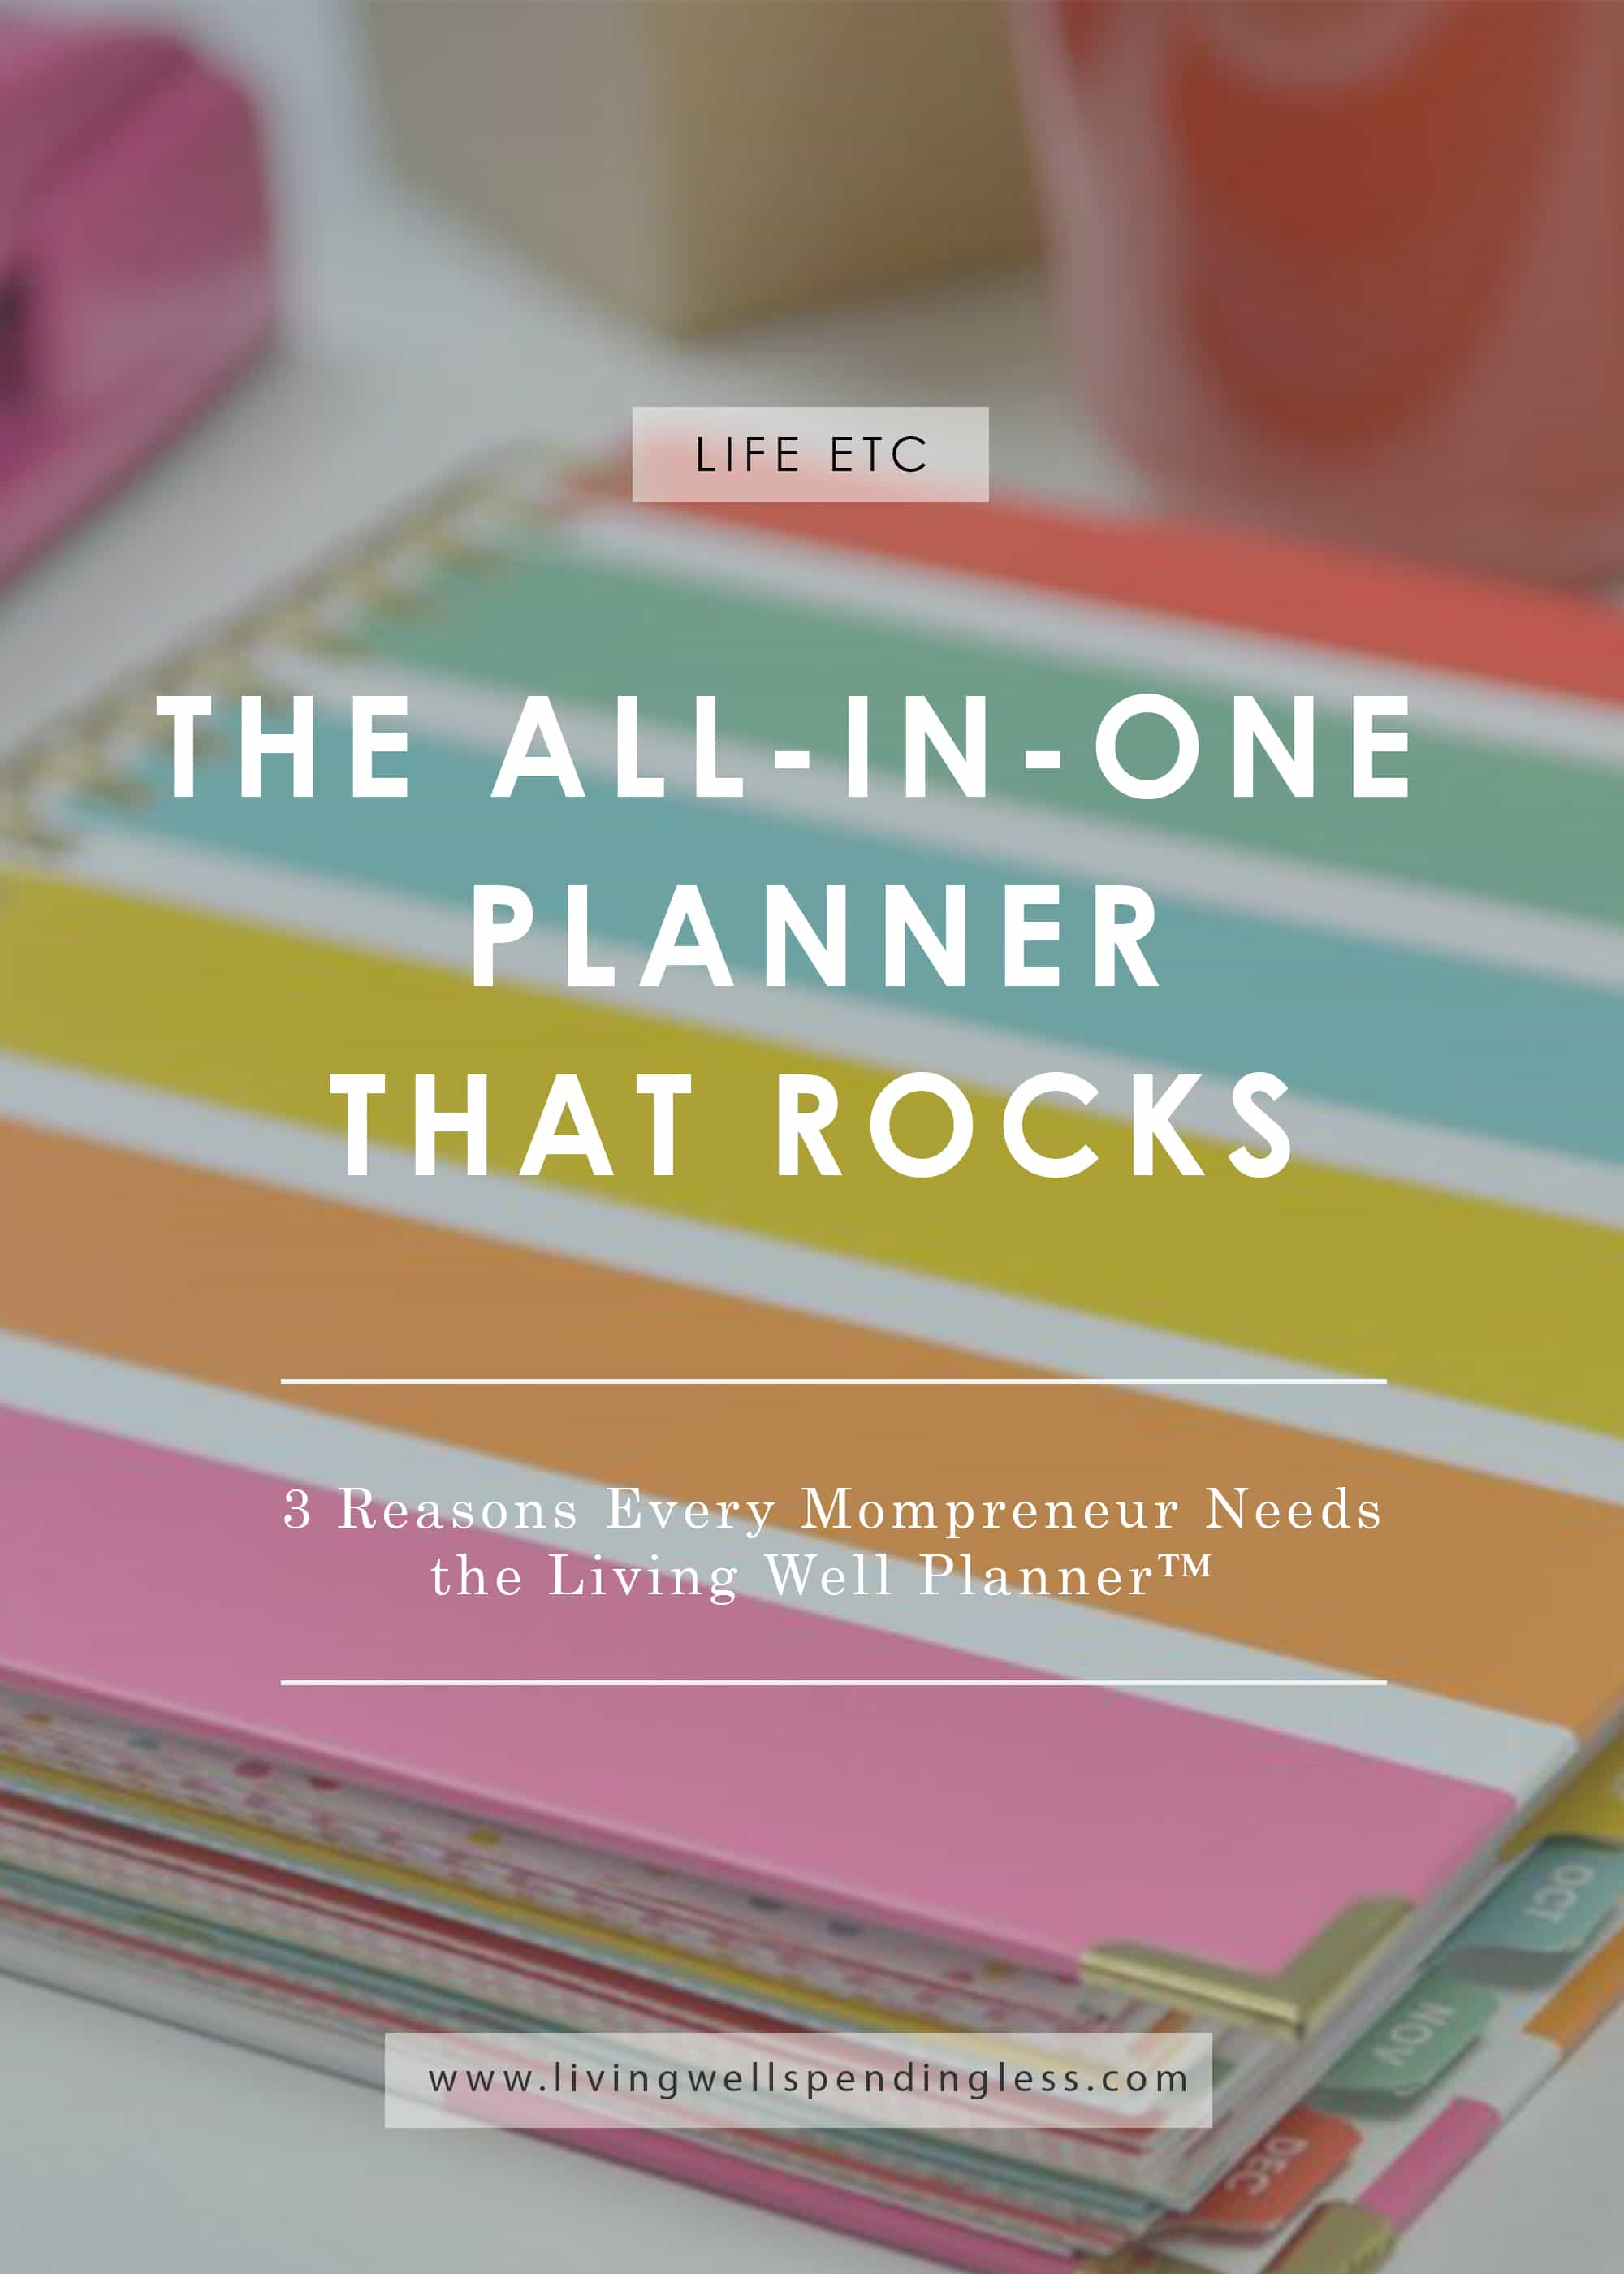 3 Reasons Every Mompreneur Needs the Living Well Planner | Time Management | Family Life | Managing Priorities